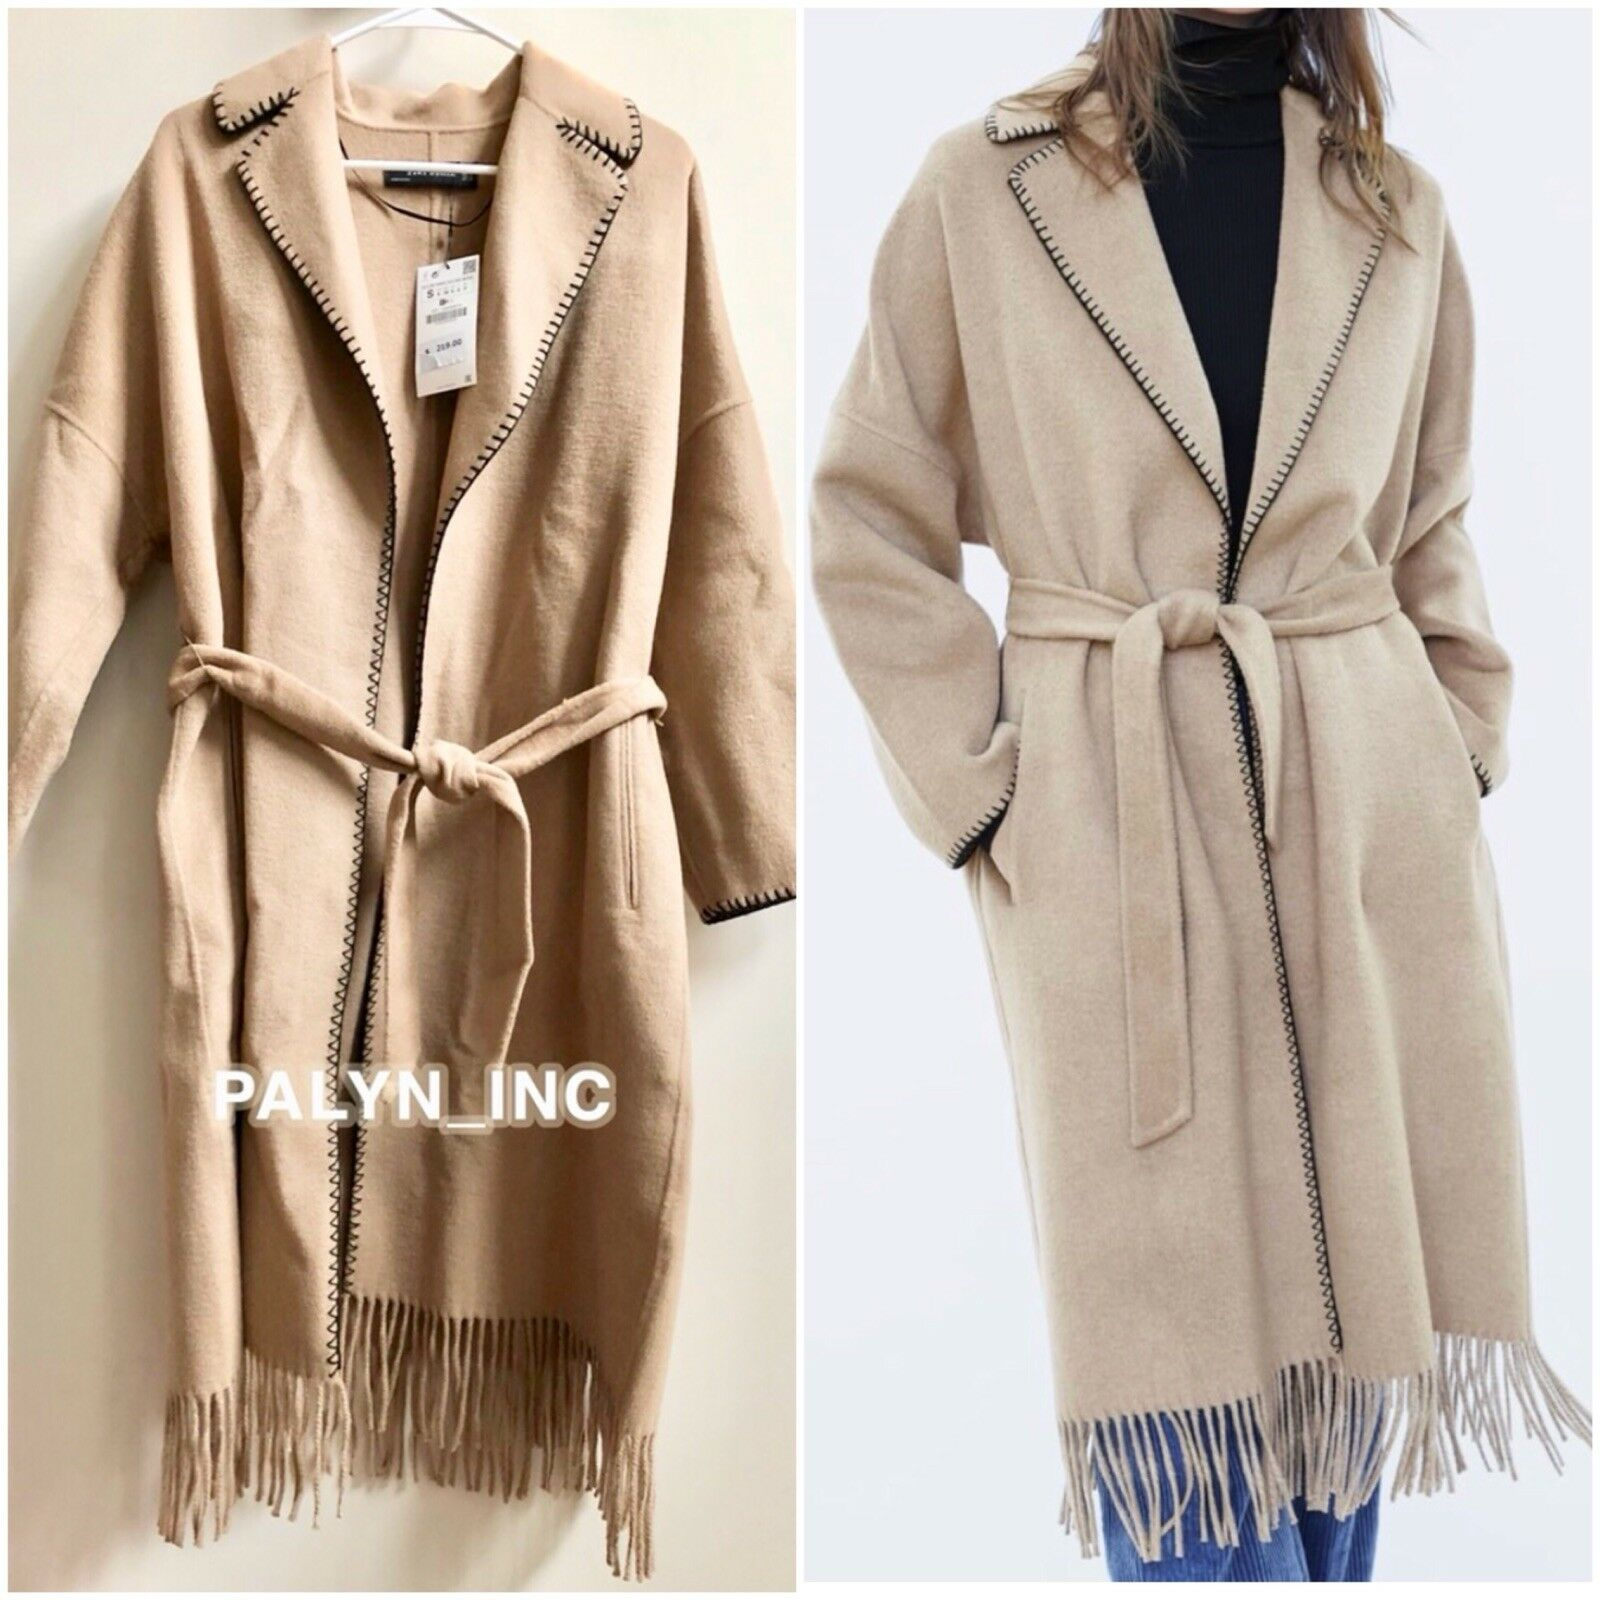 NWT  219 ZARA AW18 CAMEL BELTED DOUBLE-BREASTED COAT WITH FRINGES 7522 259_S M